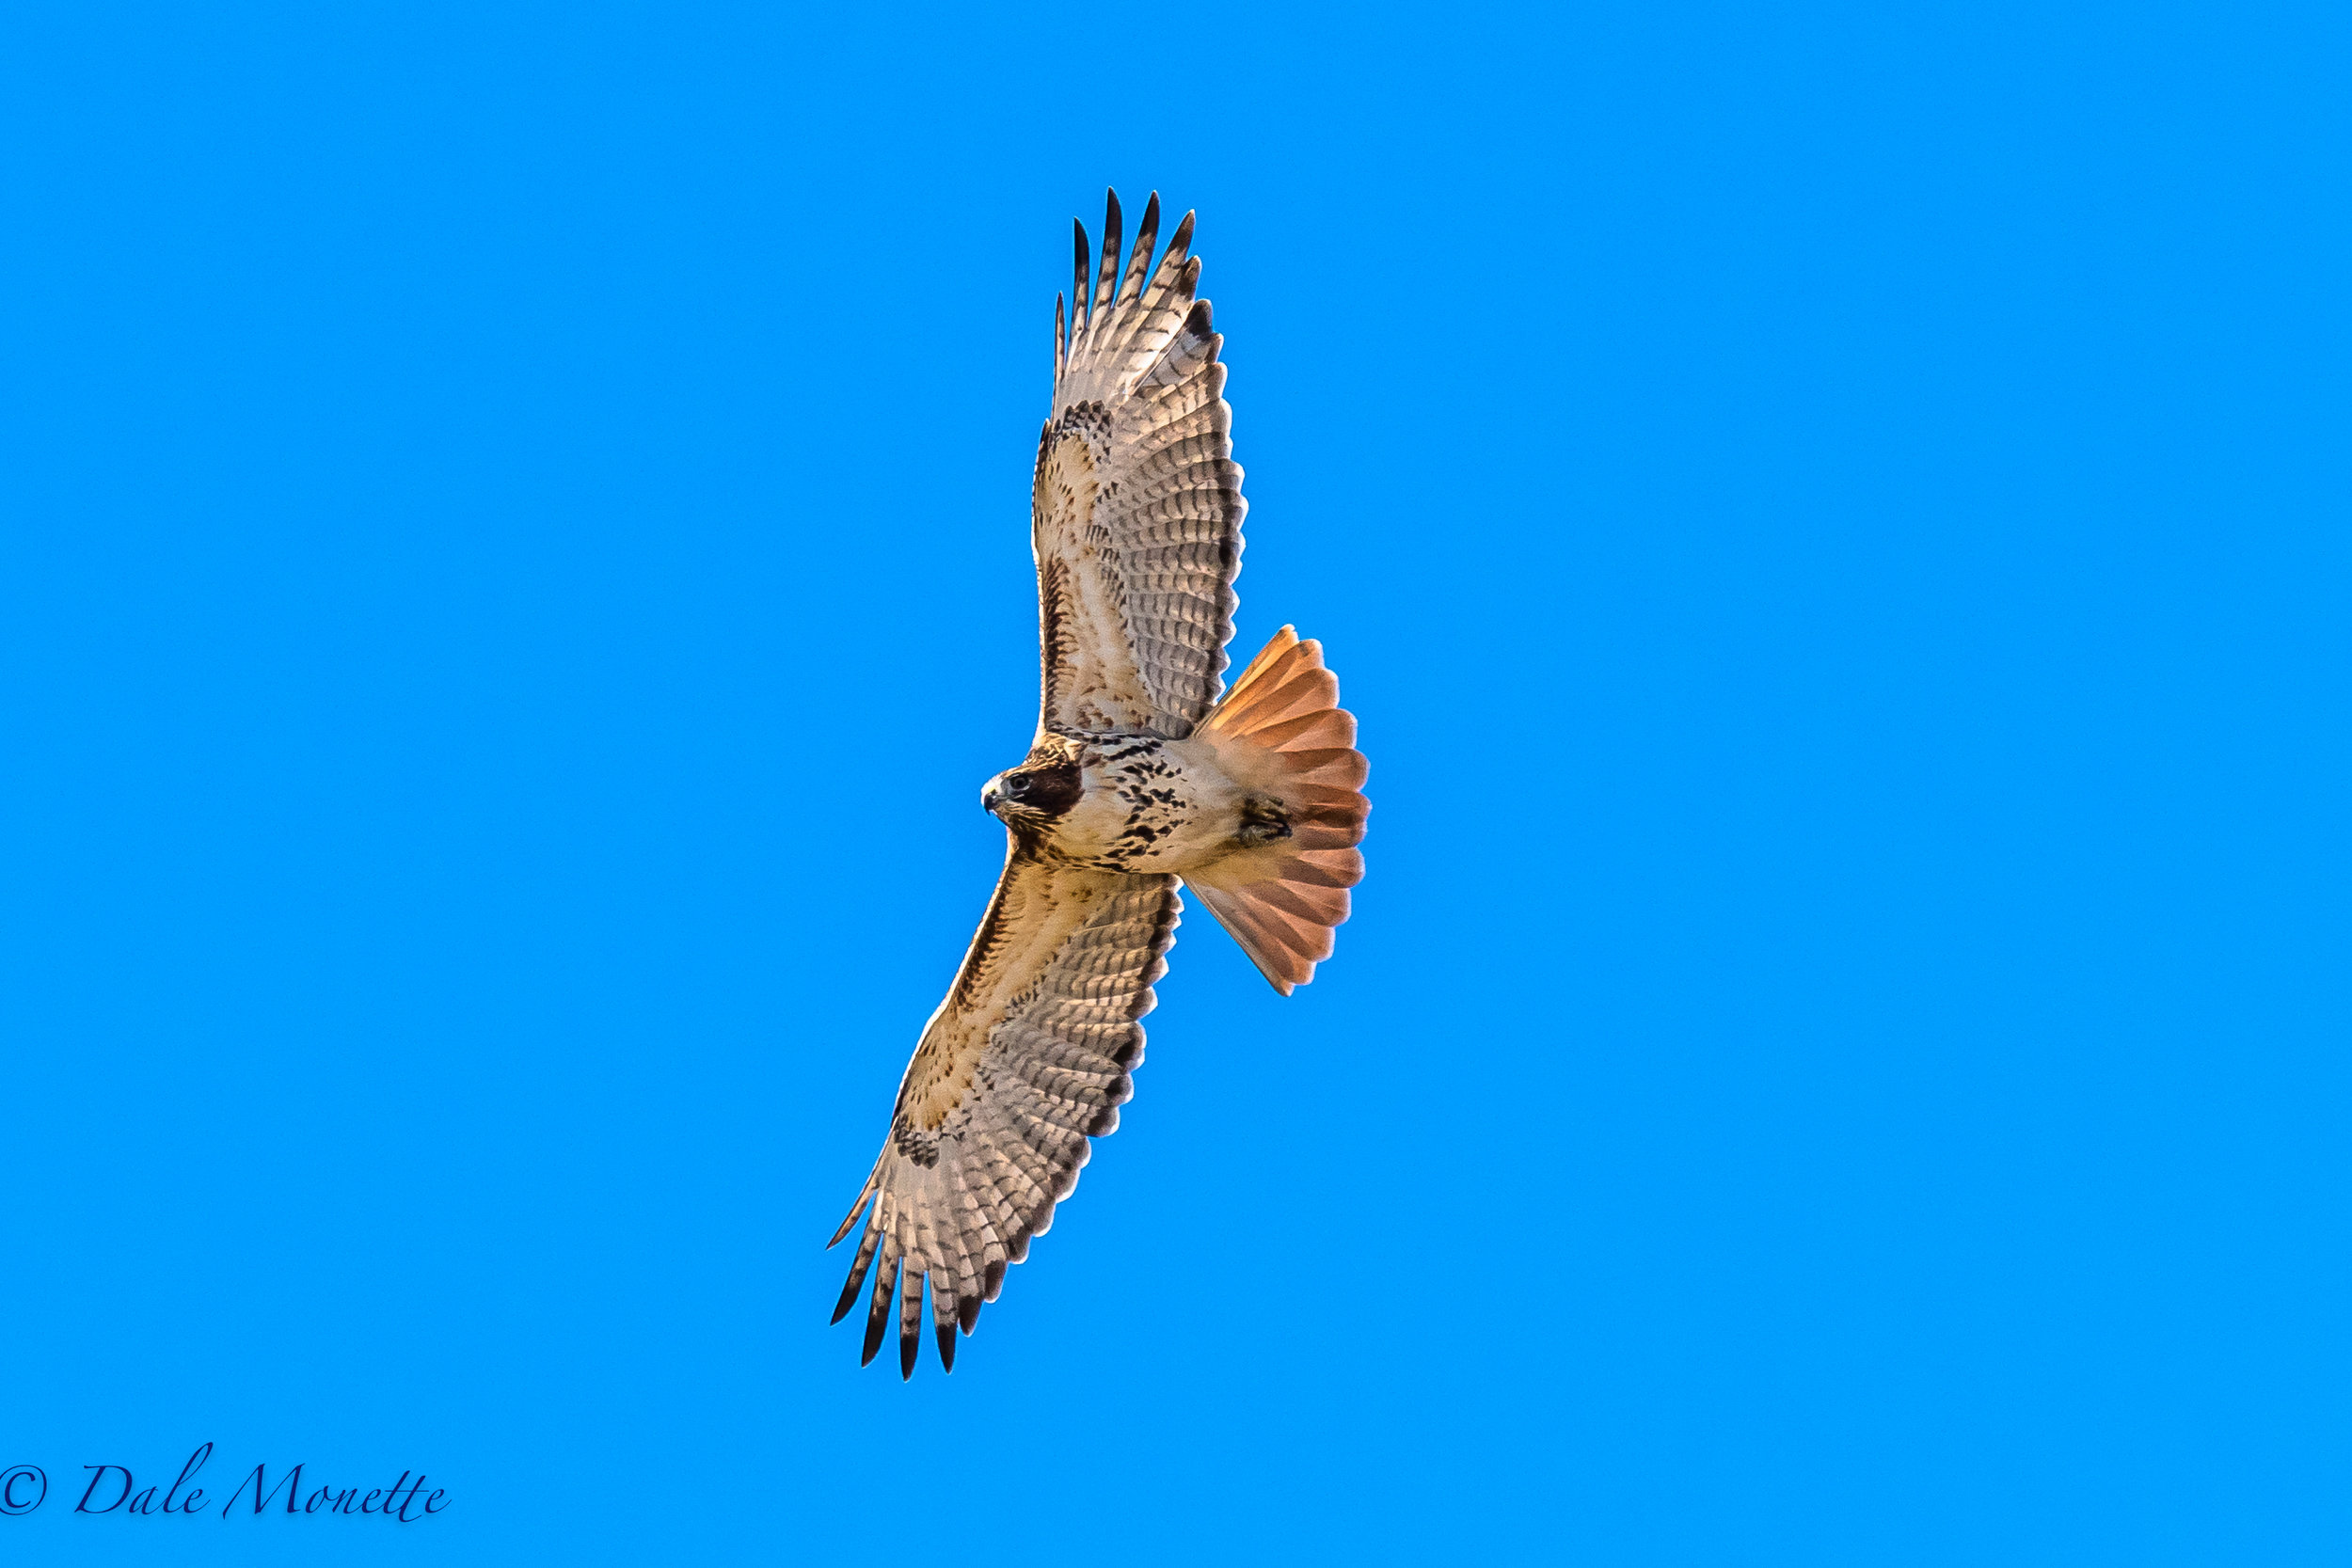 The red tailed hawk soaring over Arcadia Sanctuary meadows this morning in a stiff wind blowing right along the Connecticut River in Easthampton, MA.  11/11/16